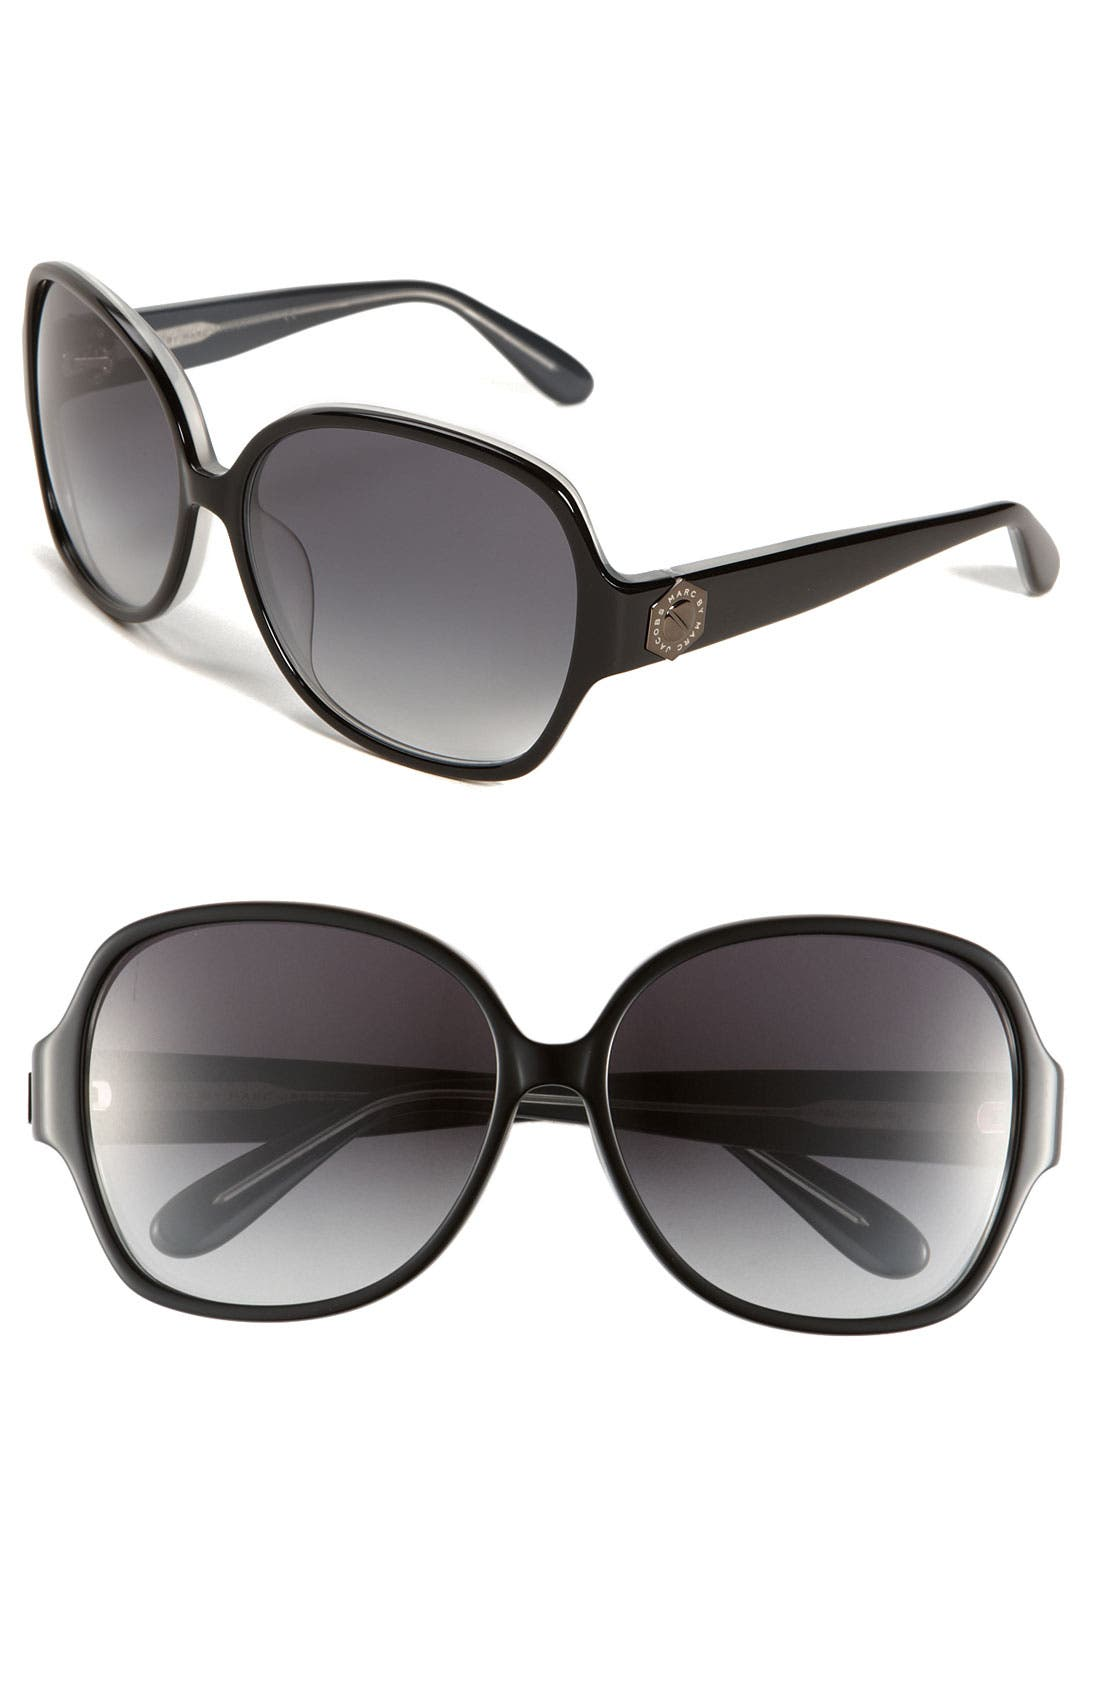 Main Image - MARC BY MARC JACOBS 'International Collection' 59mm Sunglasses